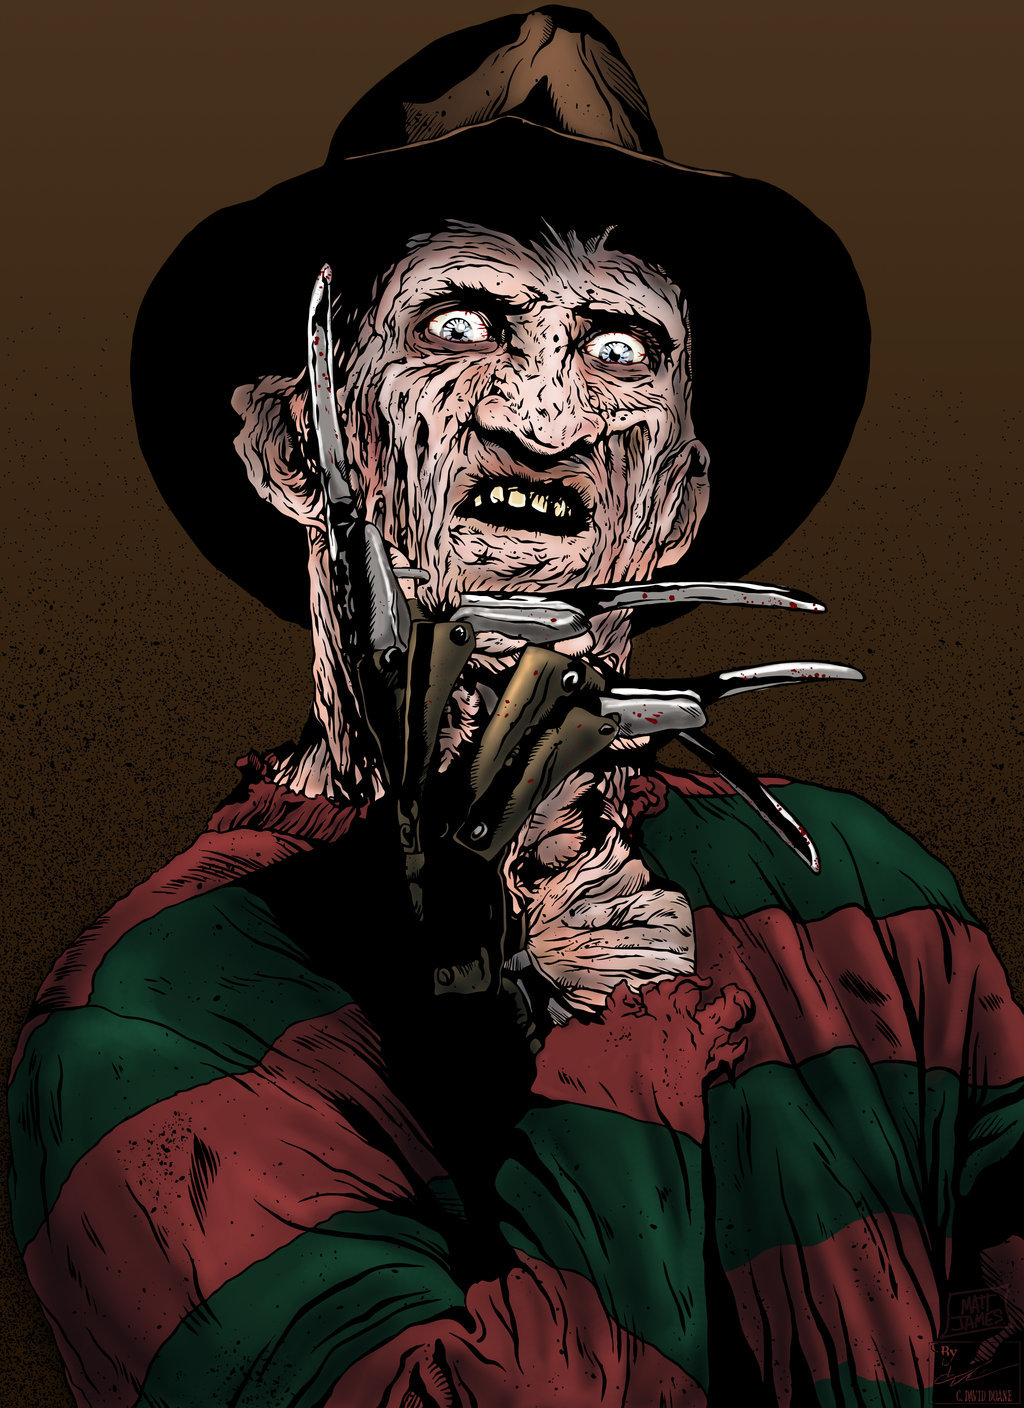 Matt james freddy kruger by outlaw68 d6slkz9